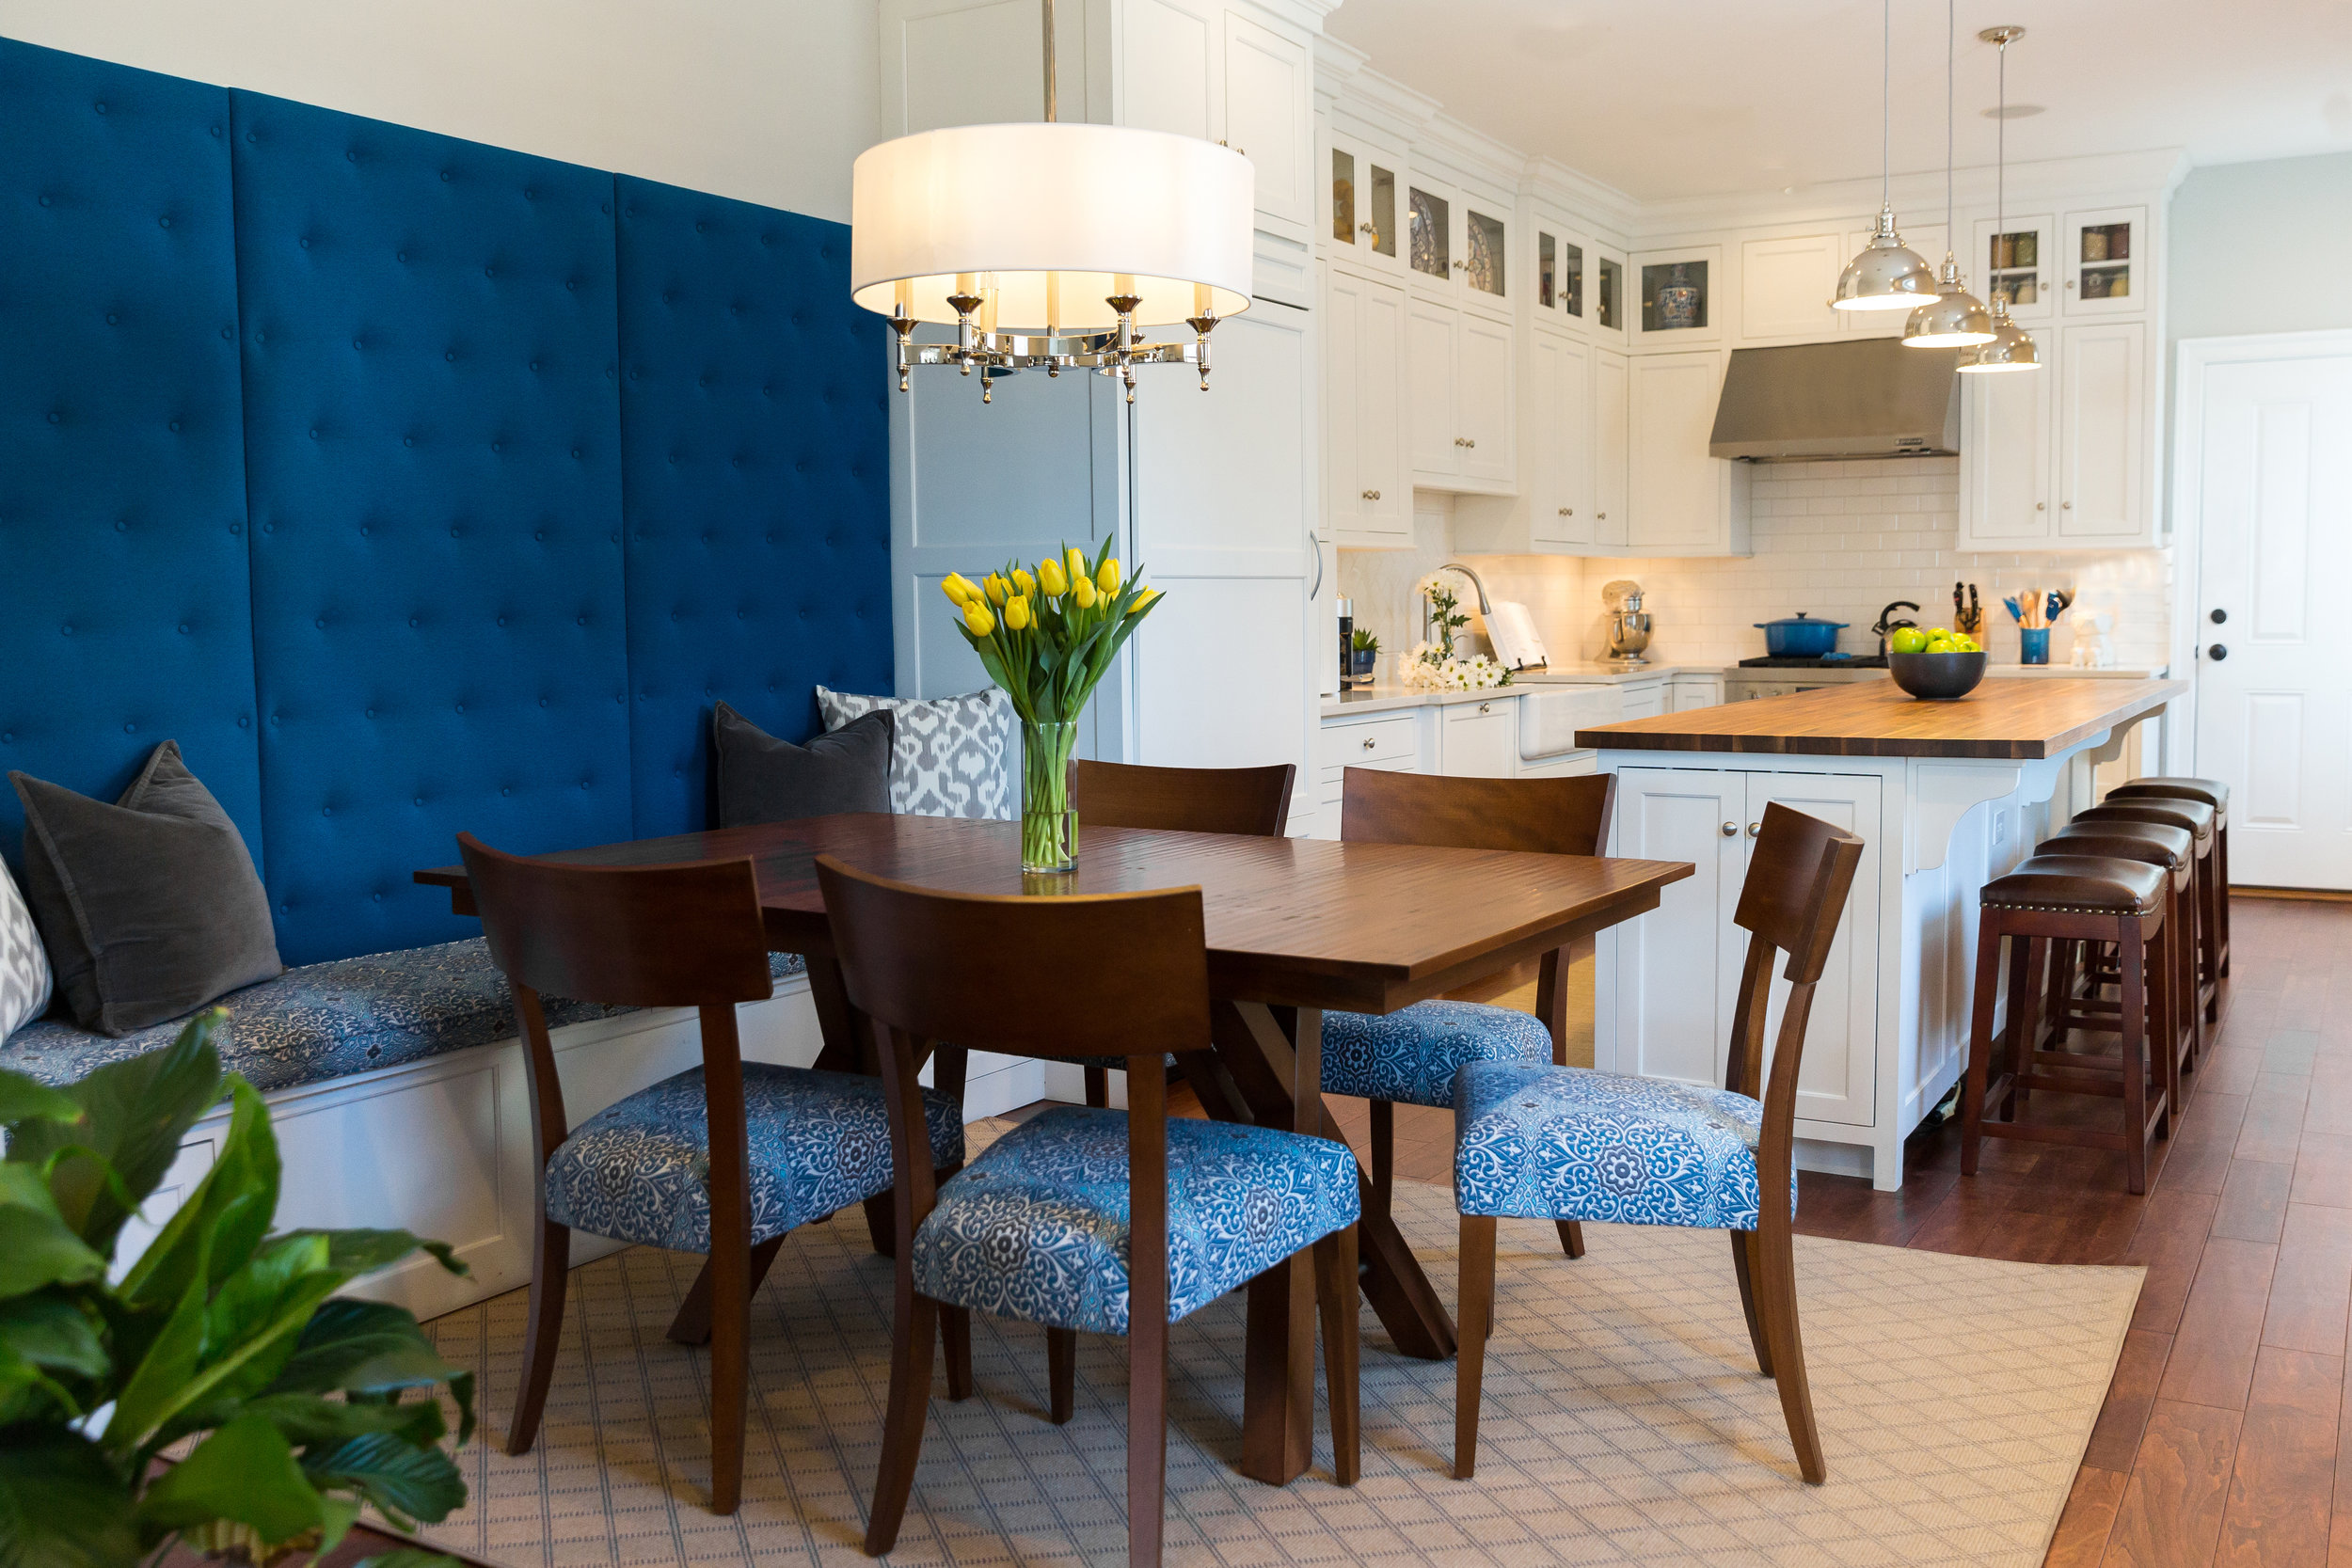 Laura Hodges Studio-Highland St-Dining Rm 2.jpg